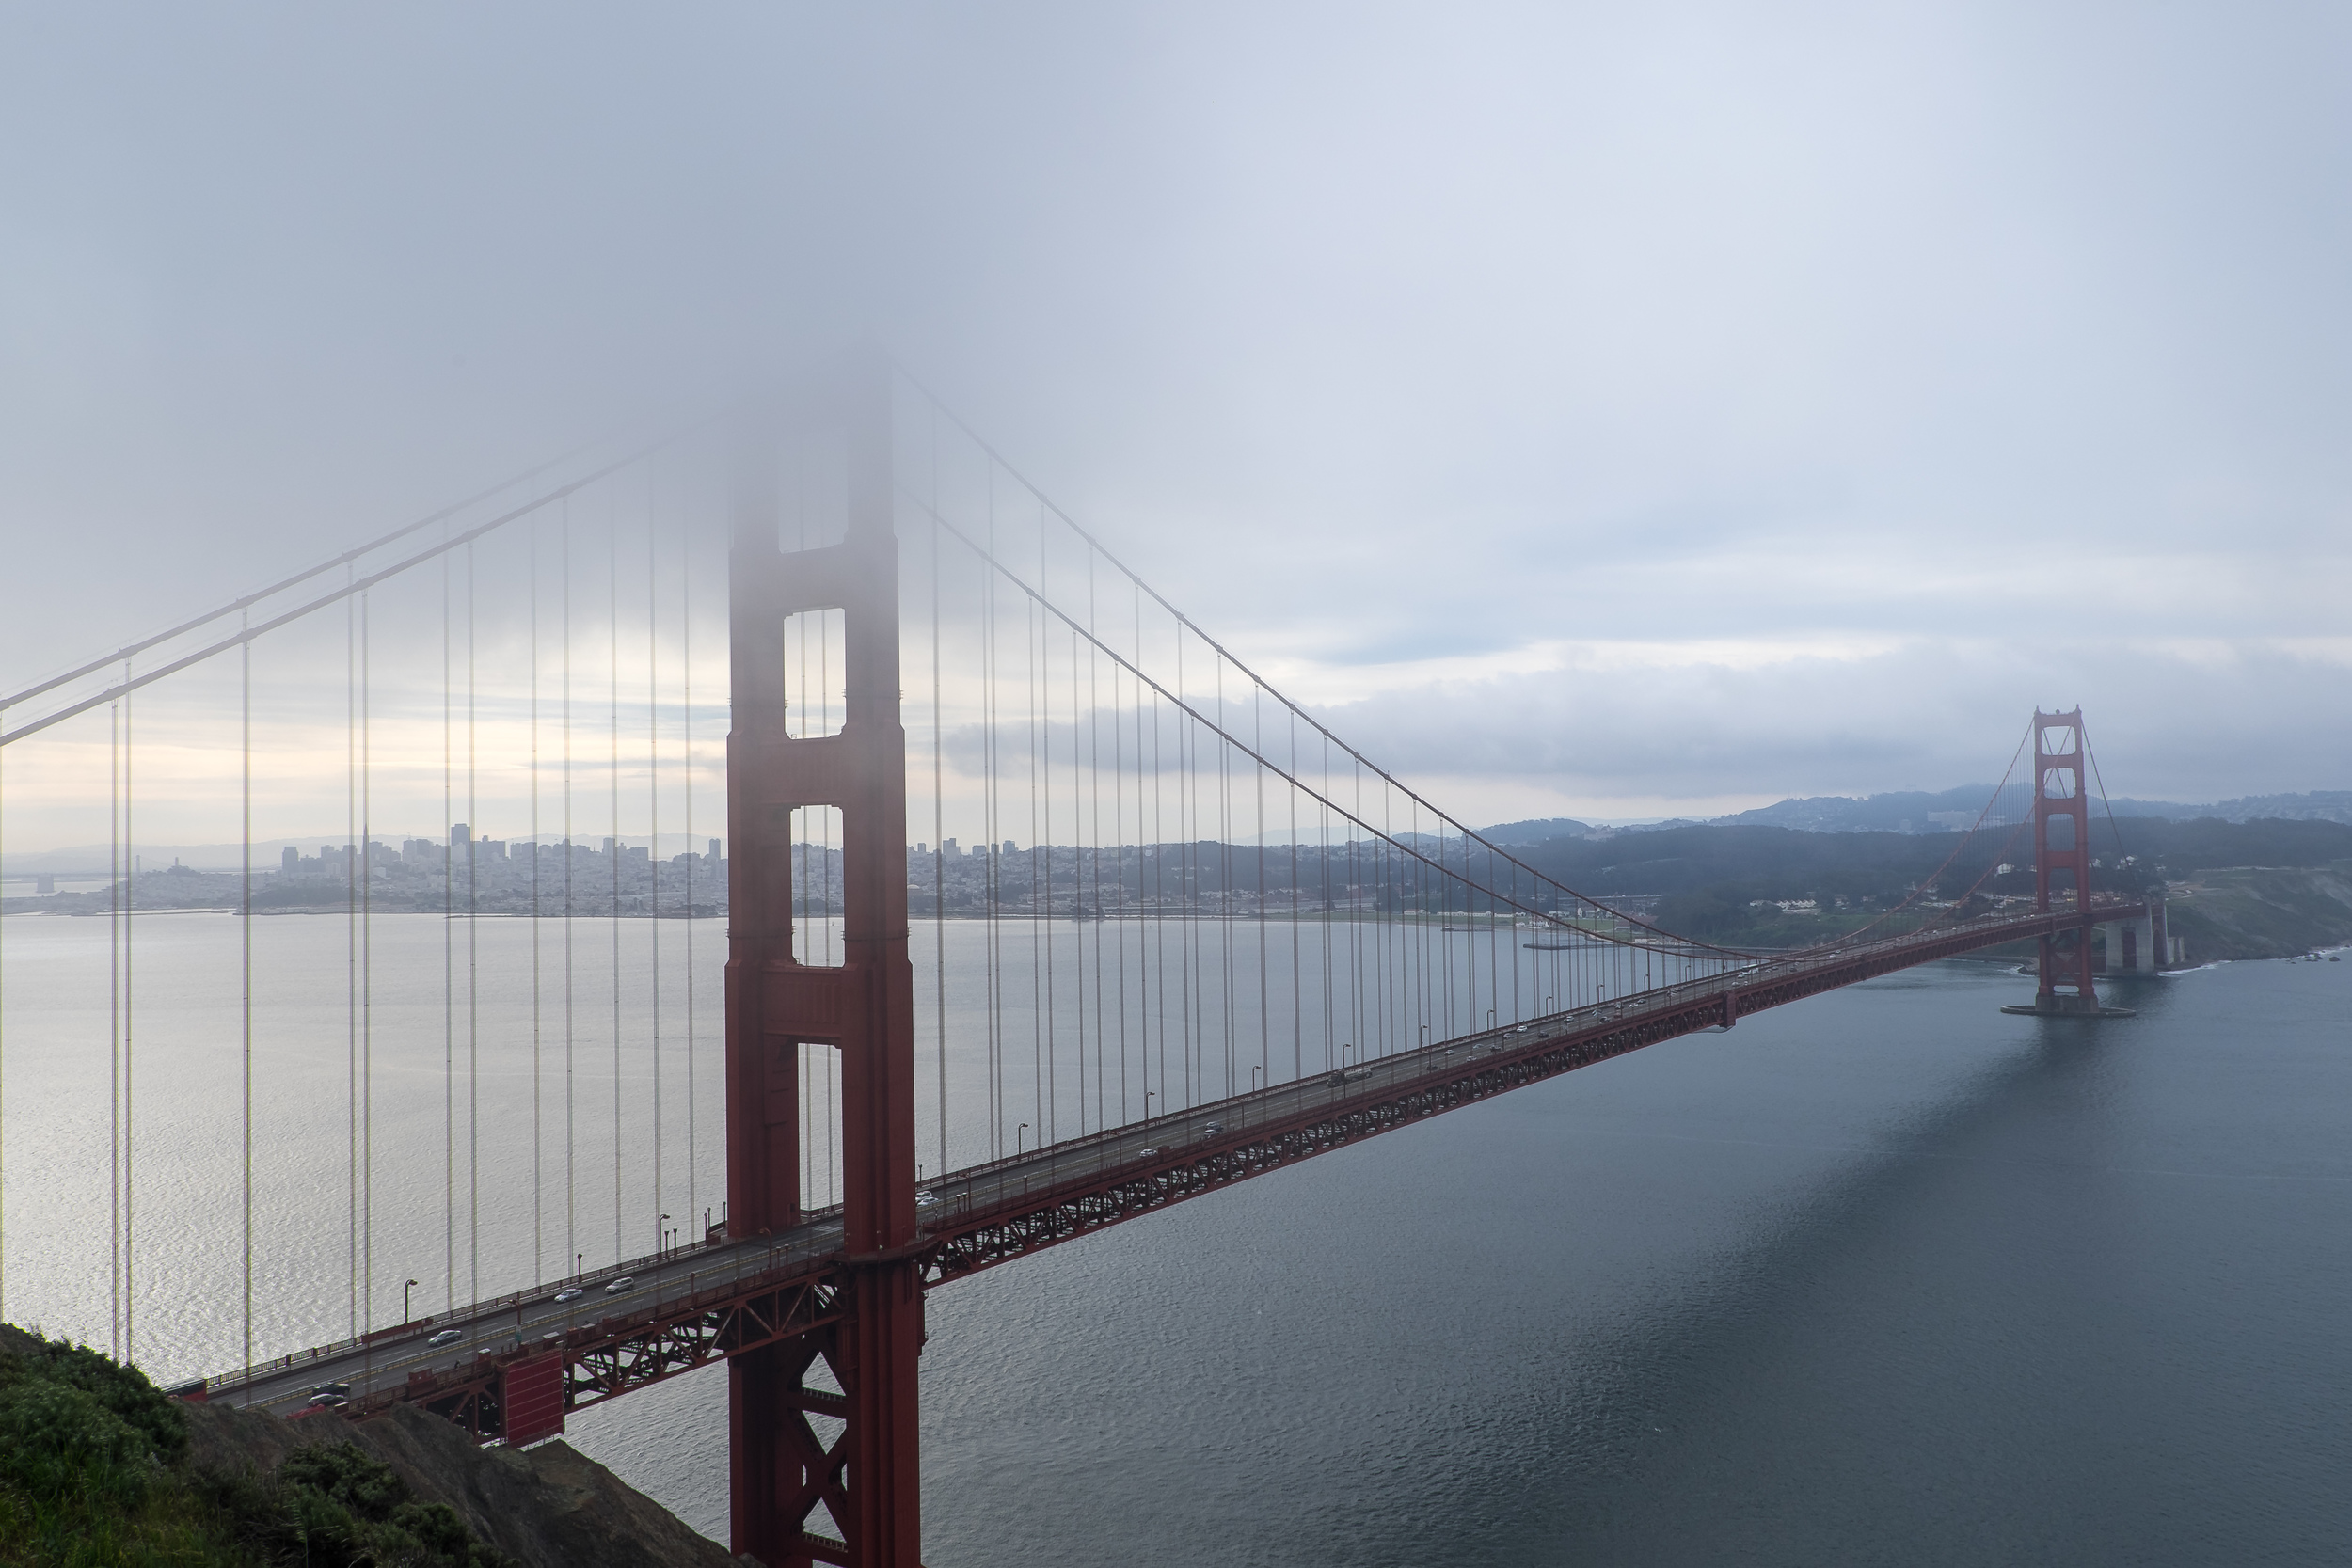 The first place I headed after landing in San Francisco was the Golden Gate Bridge. 1/200 @ f9, ISO 200.